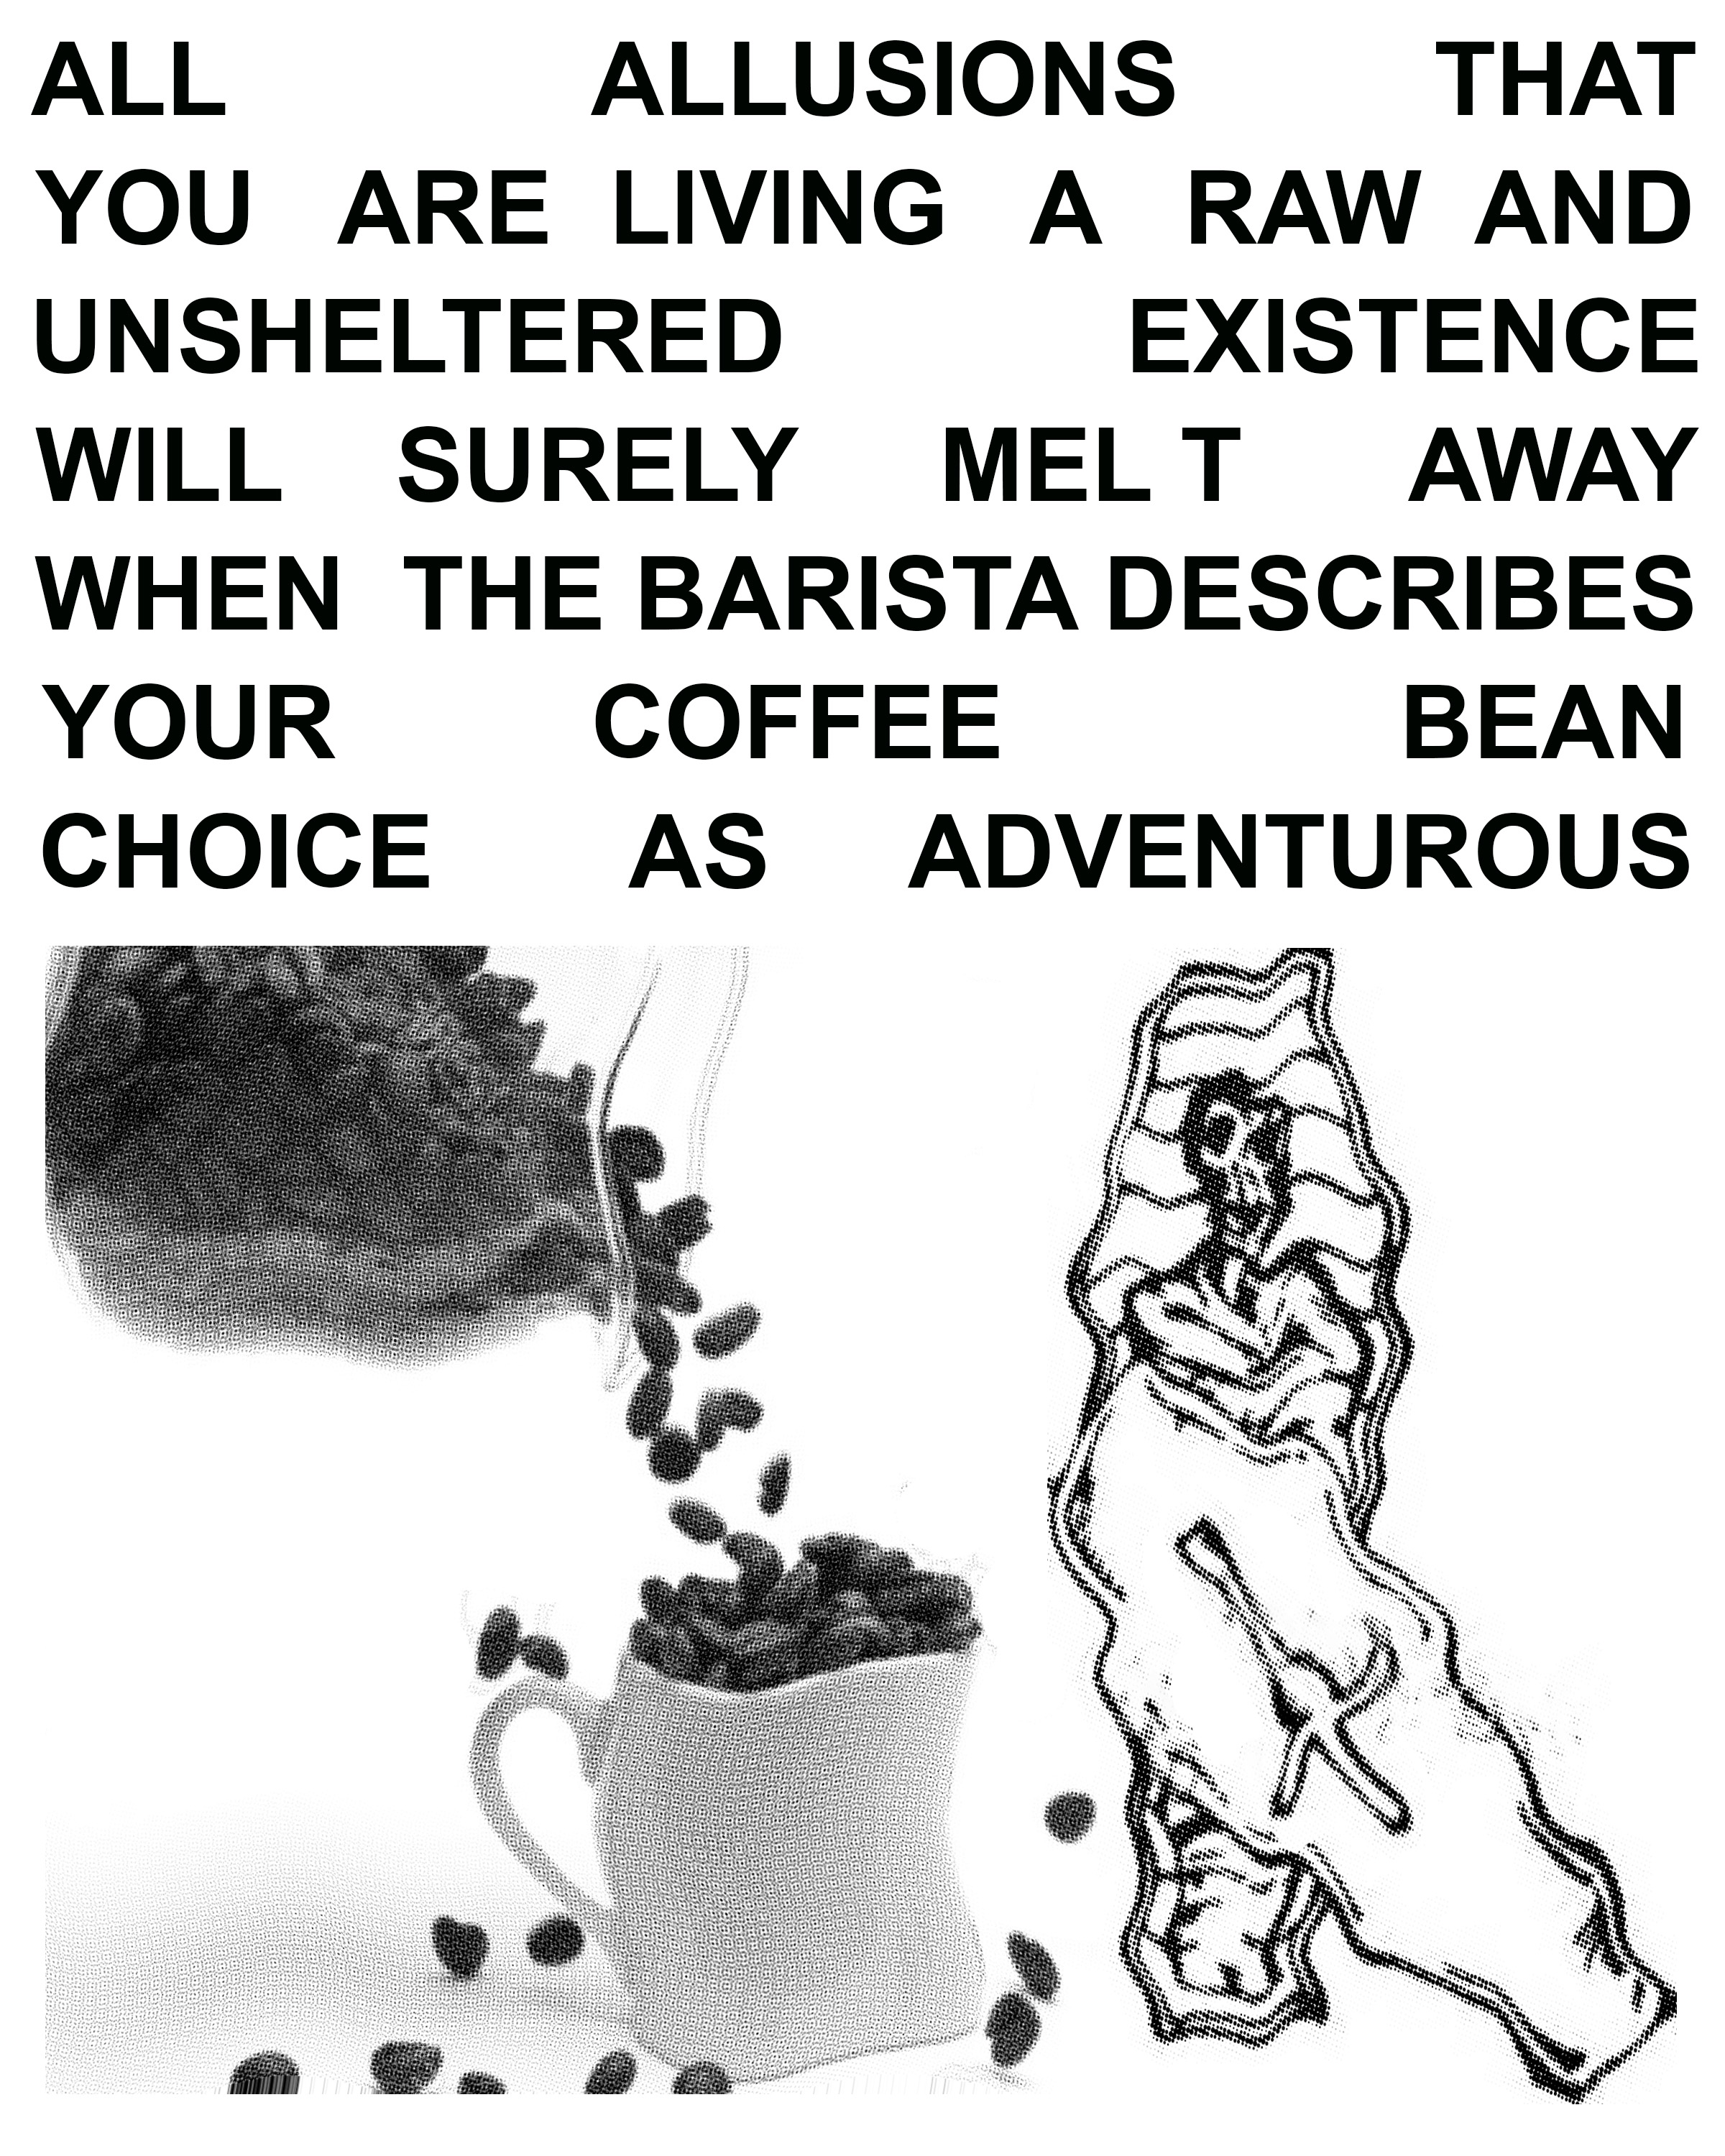 coffe adventure FIXED.jpg